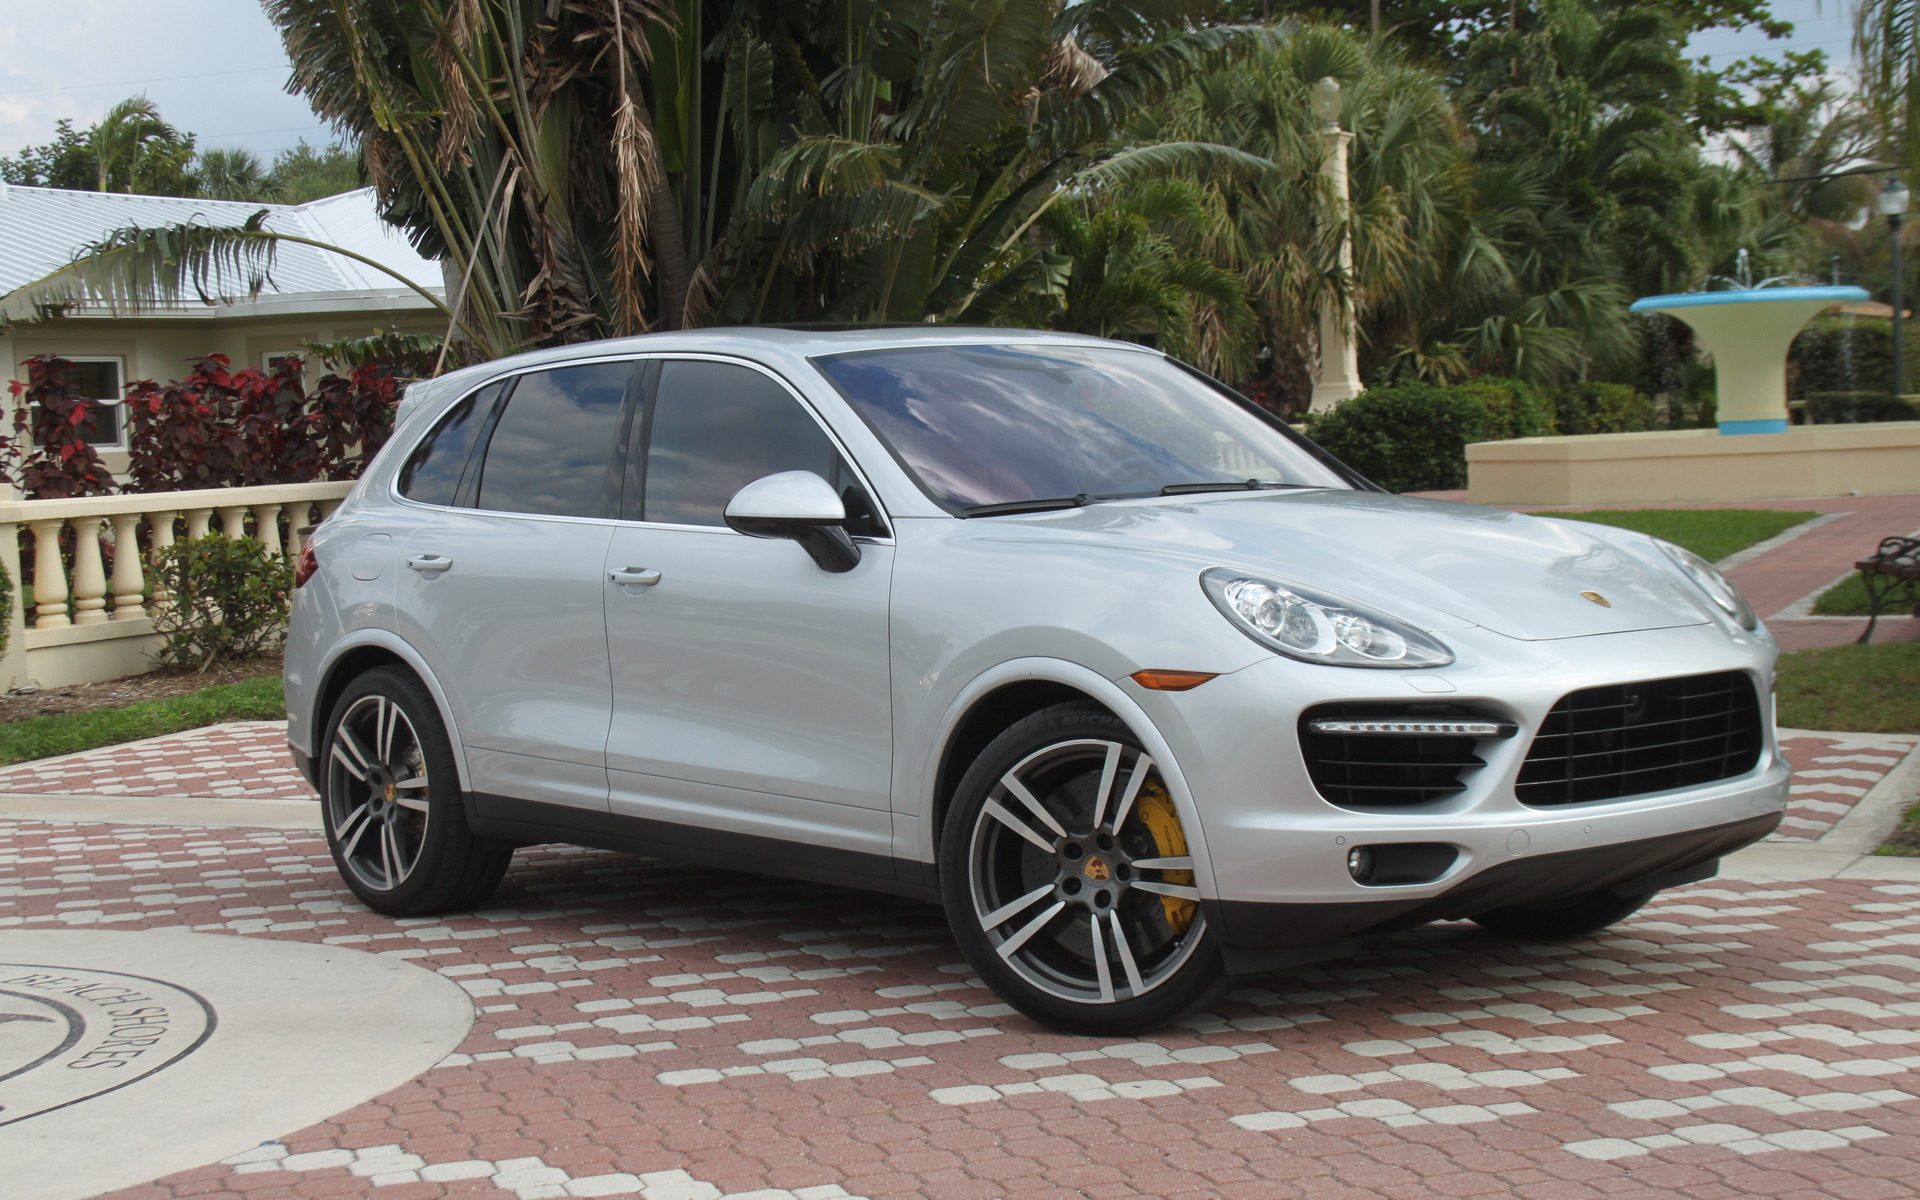 porsche cayenne 2015 vert pelouse ou rouge enfer guide auto. Black Bedroom Furniture Sets. Home Design Ideas